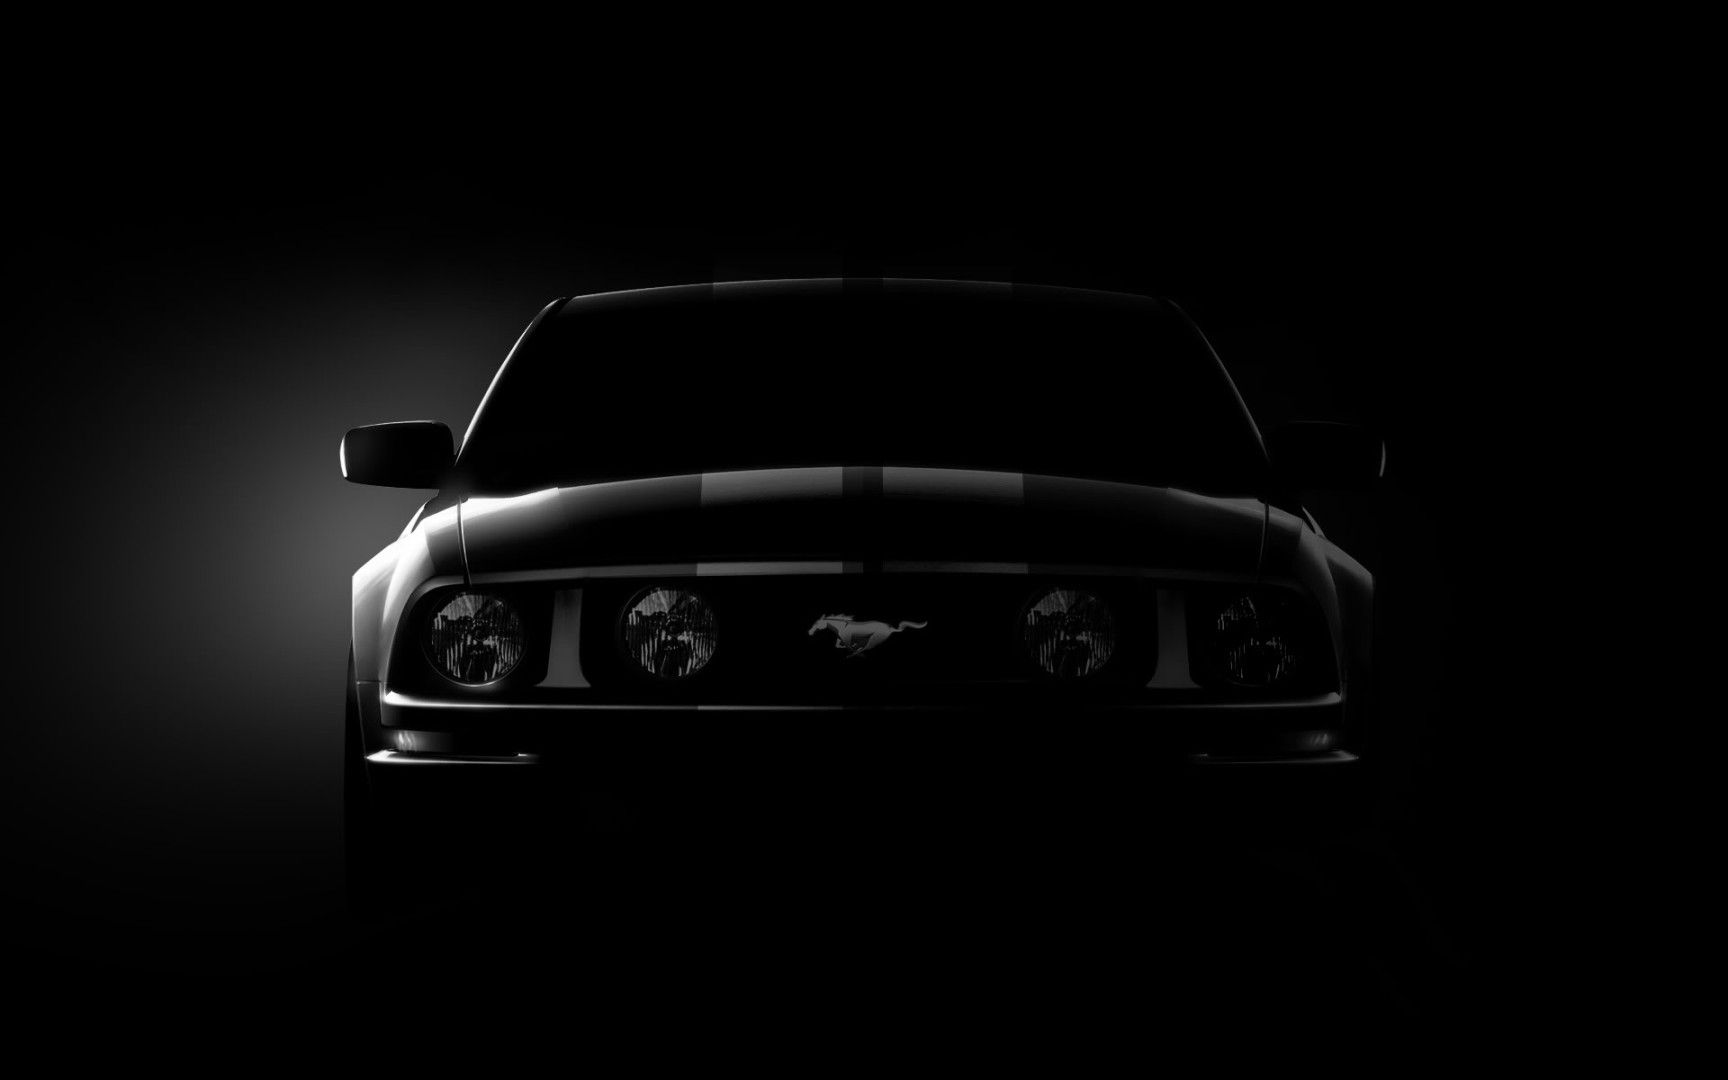 Ford Mustang Black Background Wallpaper Muscle Car Pinterest